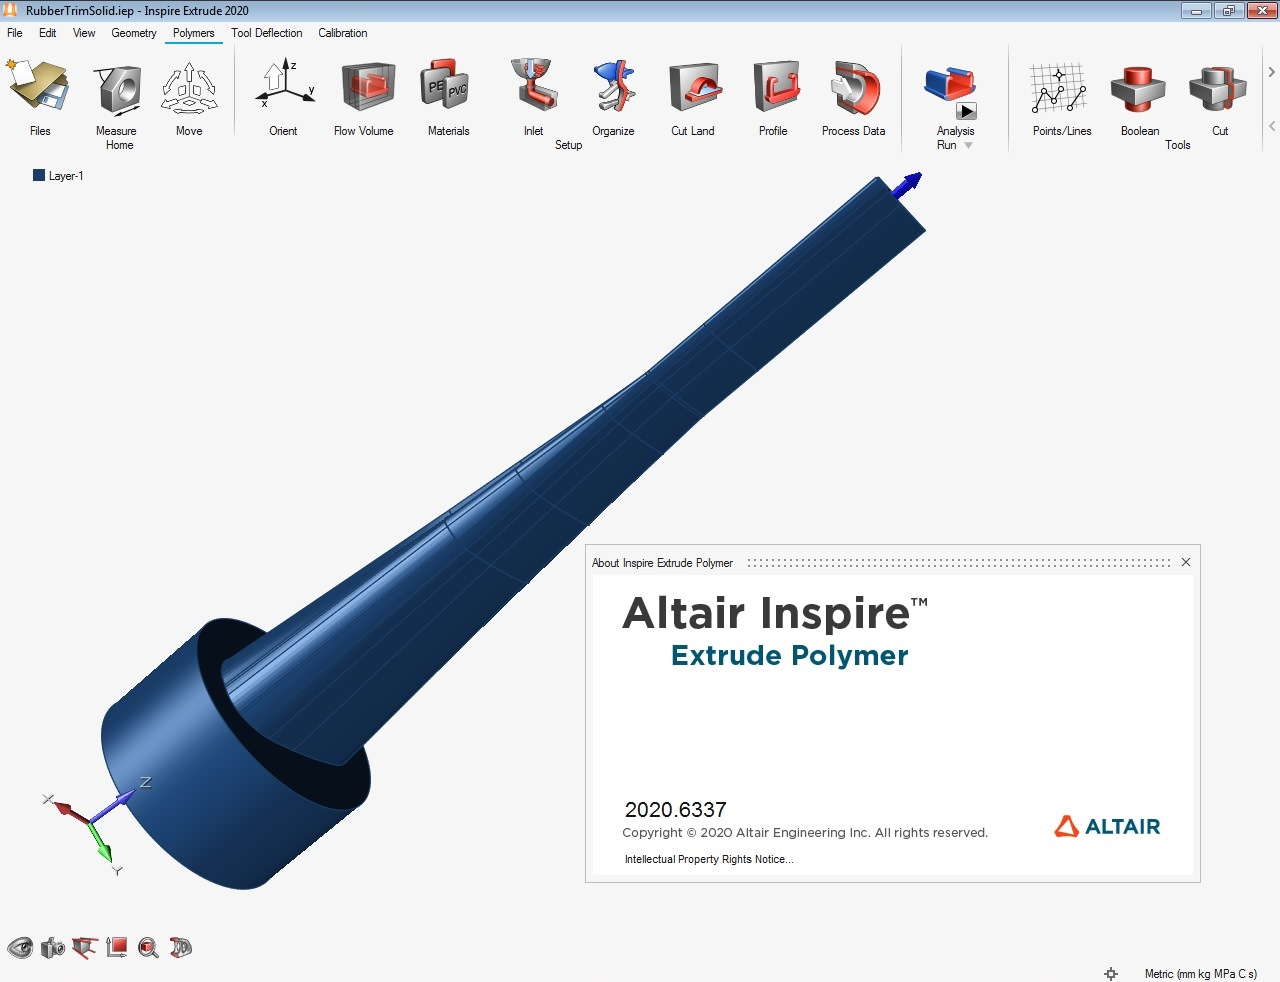 Working with Altair Inspire Extrude Polymer 2020.0 Build 6337 full license